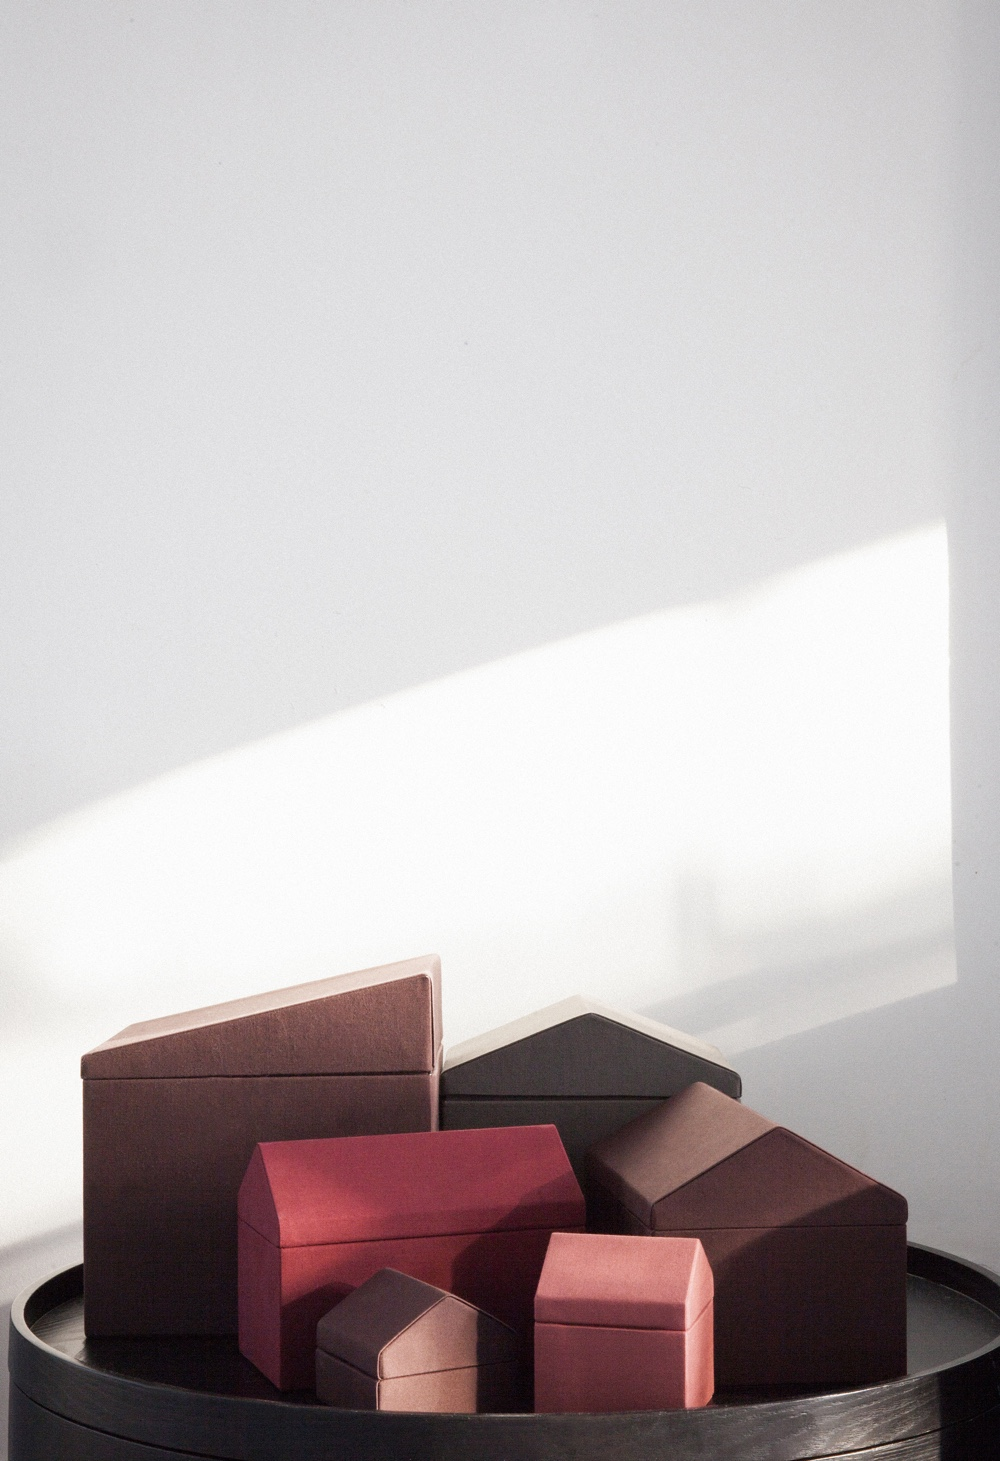 Accessory boxes in paper and textile by Note Design Studio.